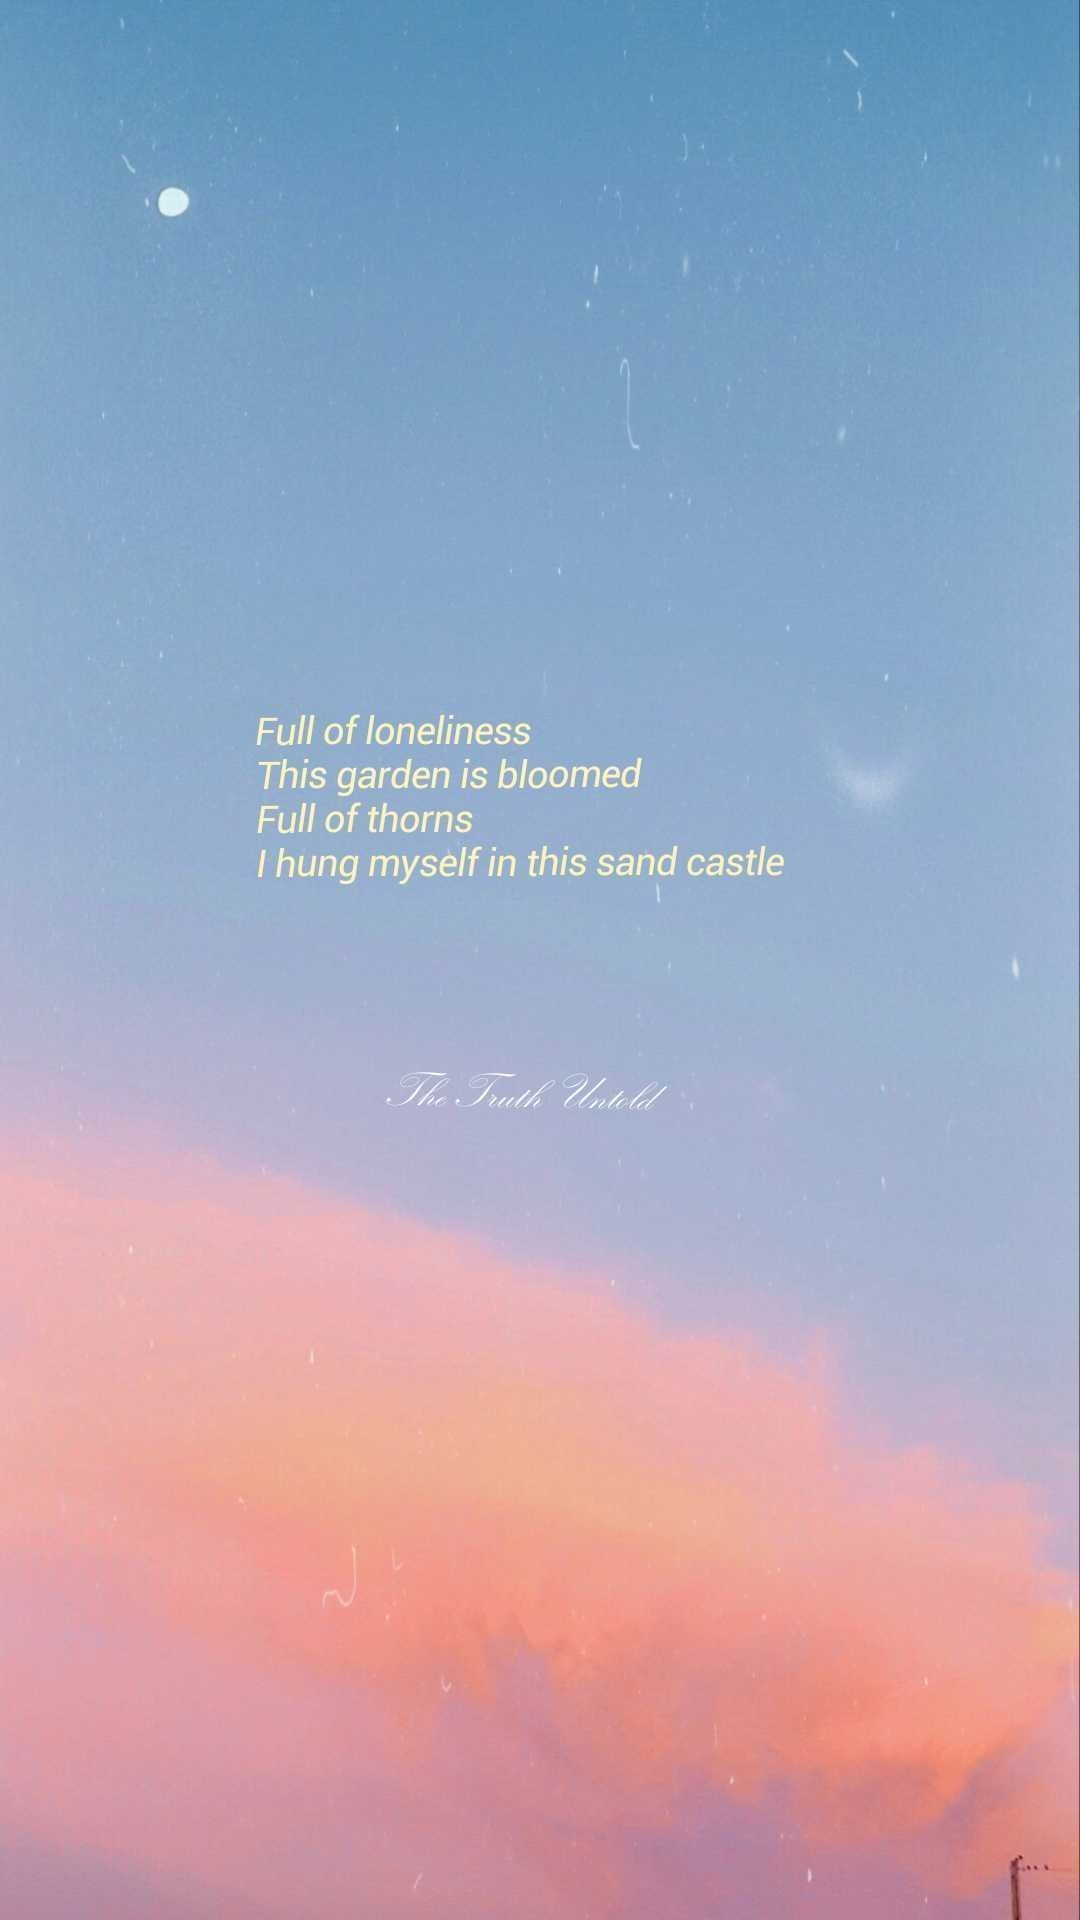 Aesthetic Bts Wallpaper Bts Aesthetic Wallpaper The Reason To Think About A Wall In Your Own Garden Is O In 2020 Bts Wallpaper Lyrics Bts Lyrics Quotes Bts Lyric